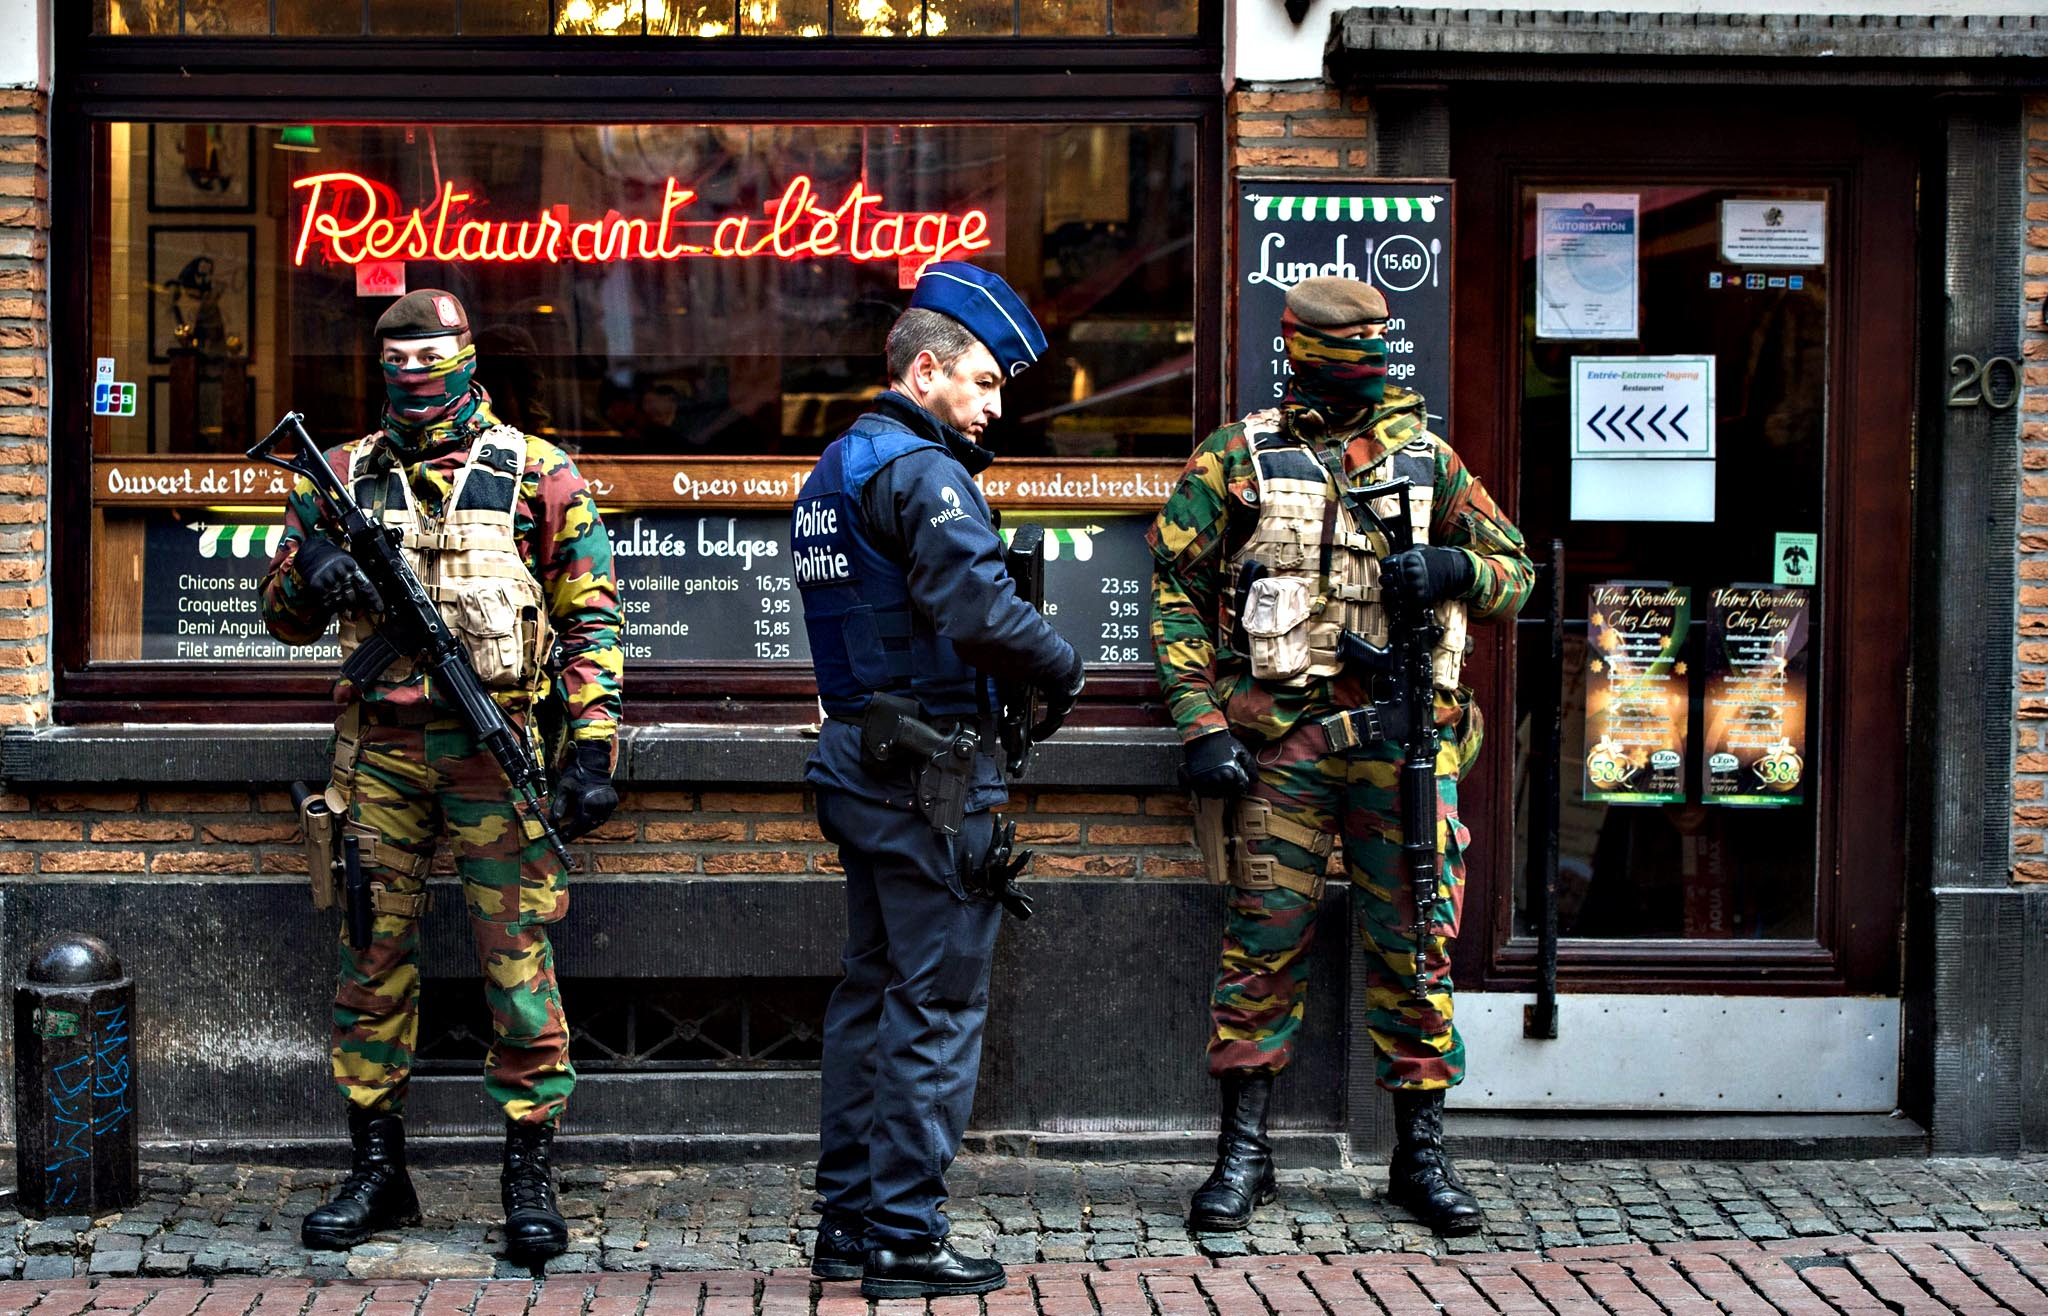 A Police officer and soldiers stand guard  in the 'Rue des Bouchers' street, famous for it's restaurants, following the terror alert level being elevated to 4/4, in Brussels, Belgium. Belgium raised the alert status at Level 4/4 as 'serious and imminent' threat of an attack, the main effect are closing of all Metro Line in Brussels, all soccer match of league one and two cancelled countrywide. The Belgian government said it had concrete evidence of a planned terrorist attack that would have employed weapons and explosives